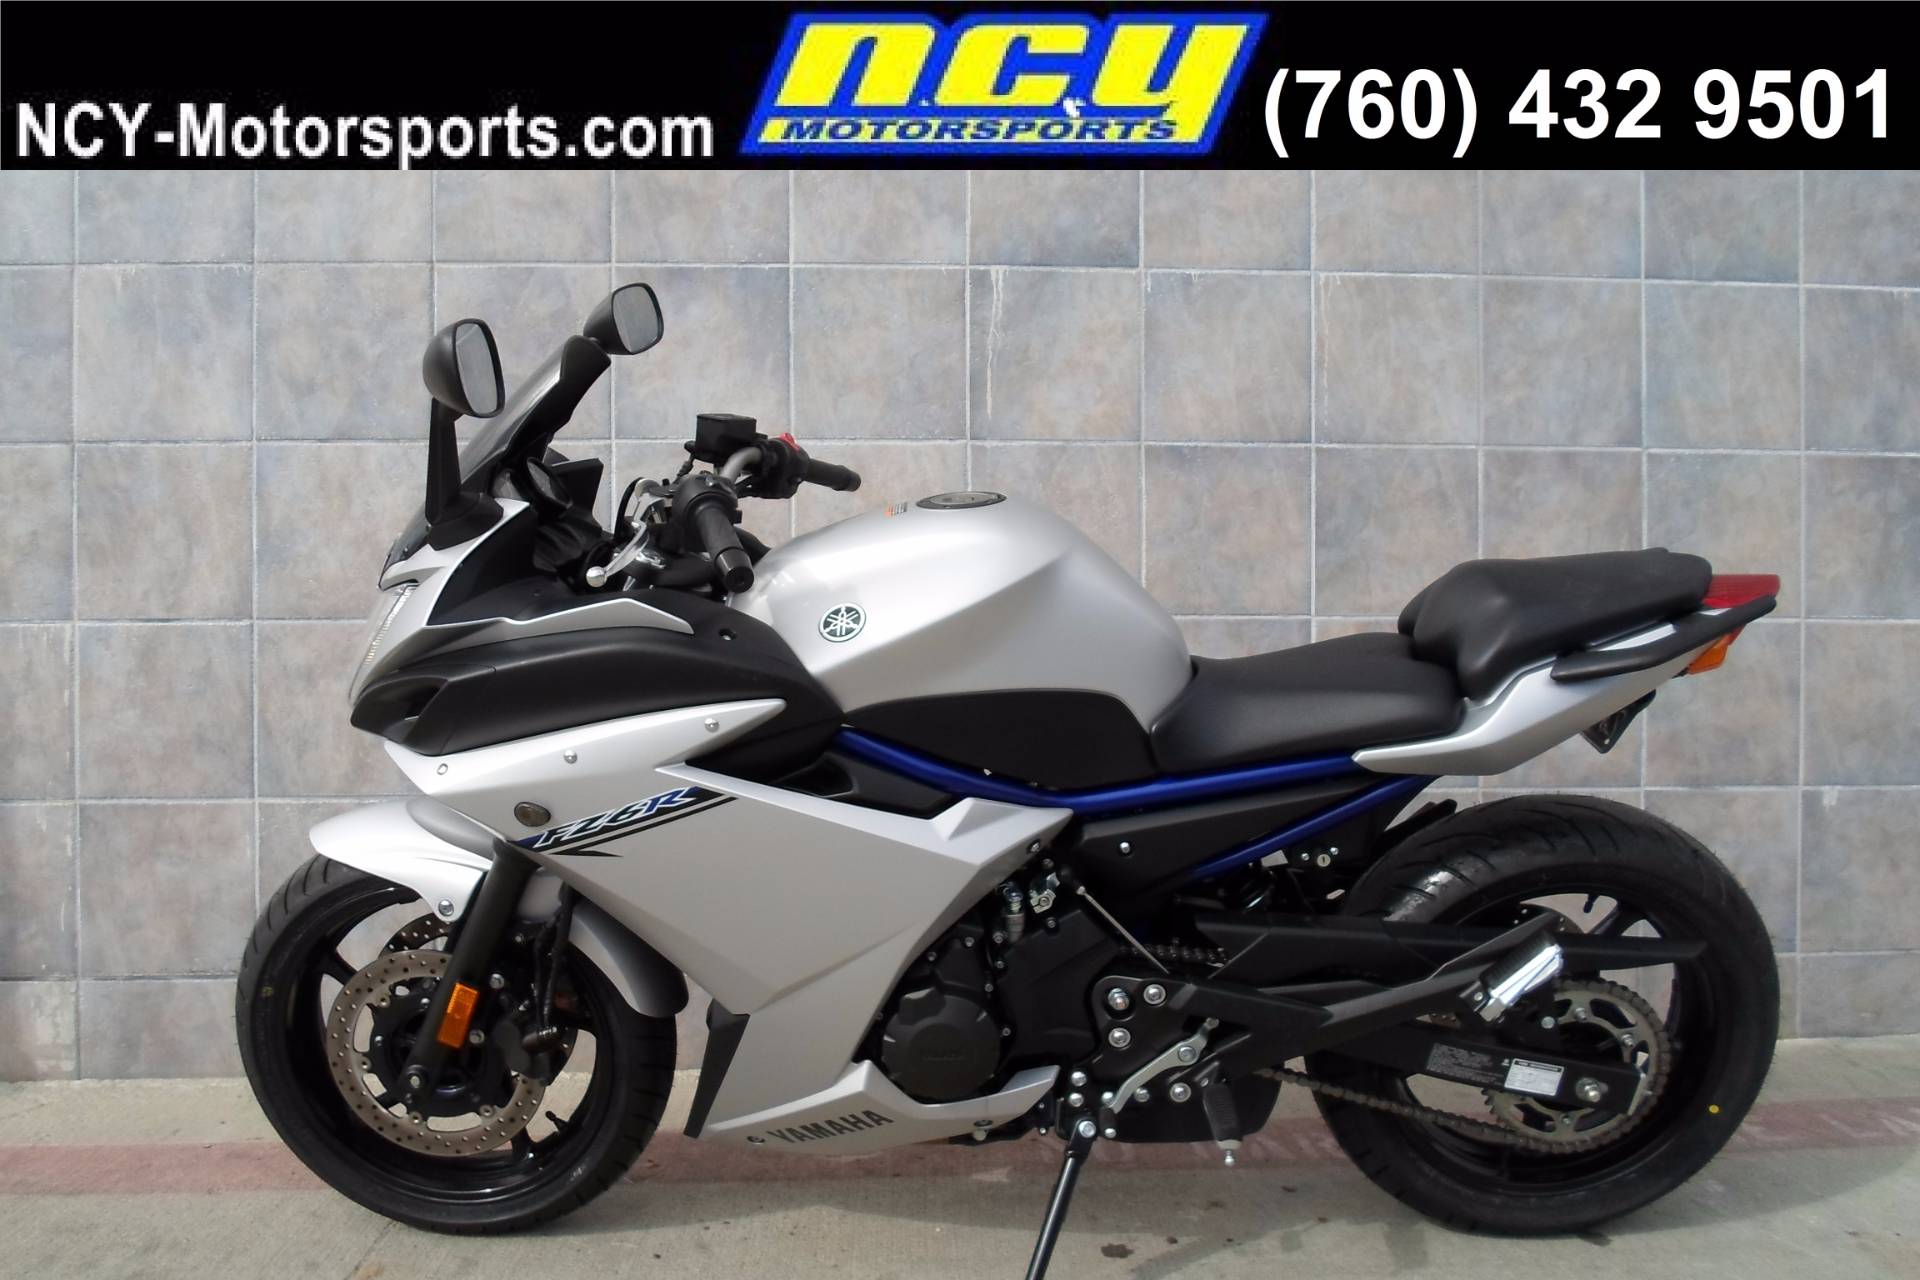 Used 2017 Yamaha FZ6R Motorcycles in San Marcos, CA